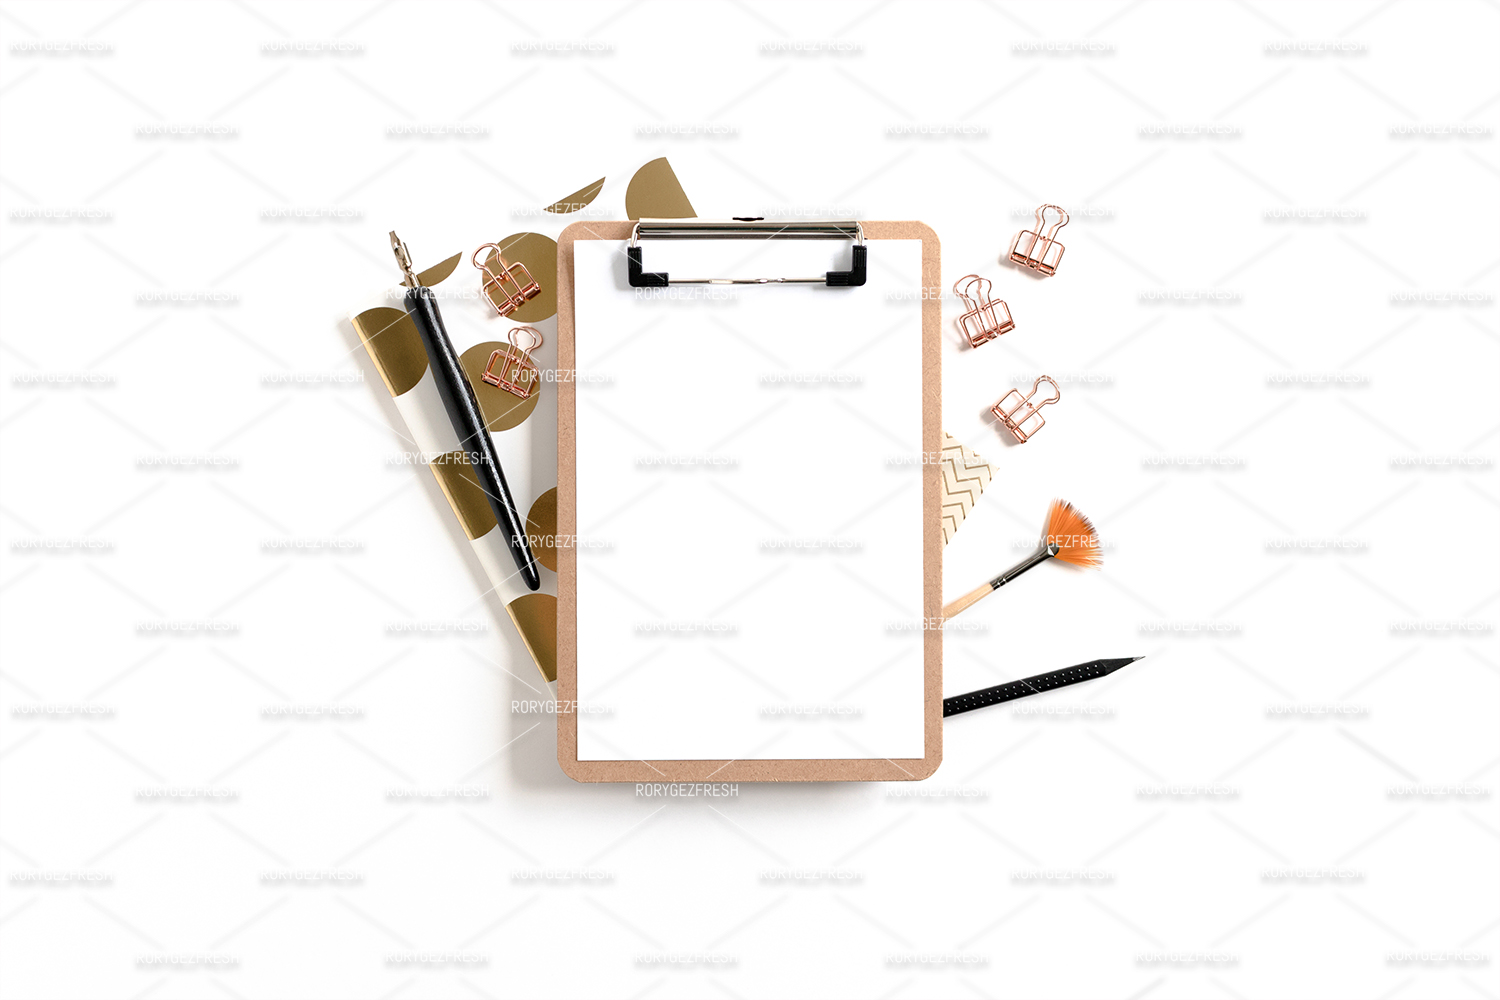 Clipboard mockup with frame made of stationery and notepads example image 1